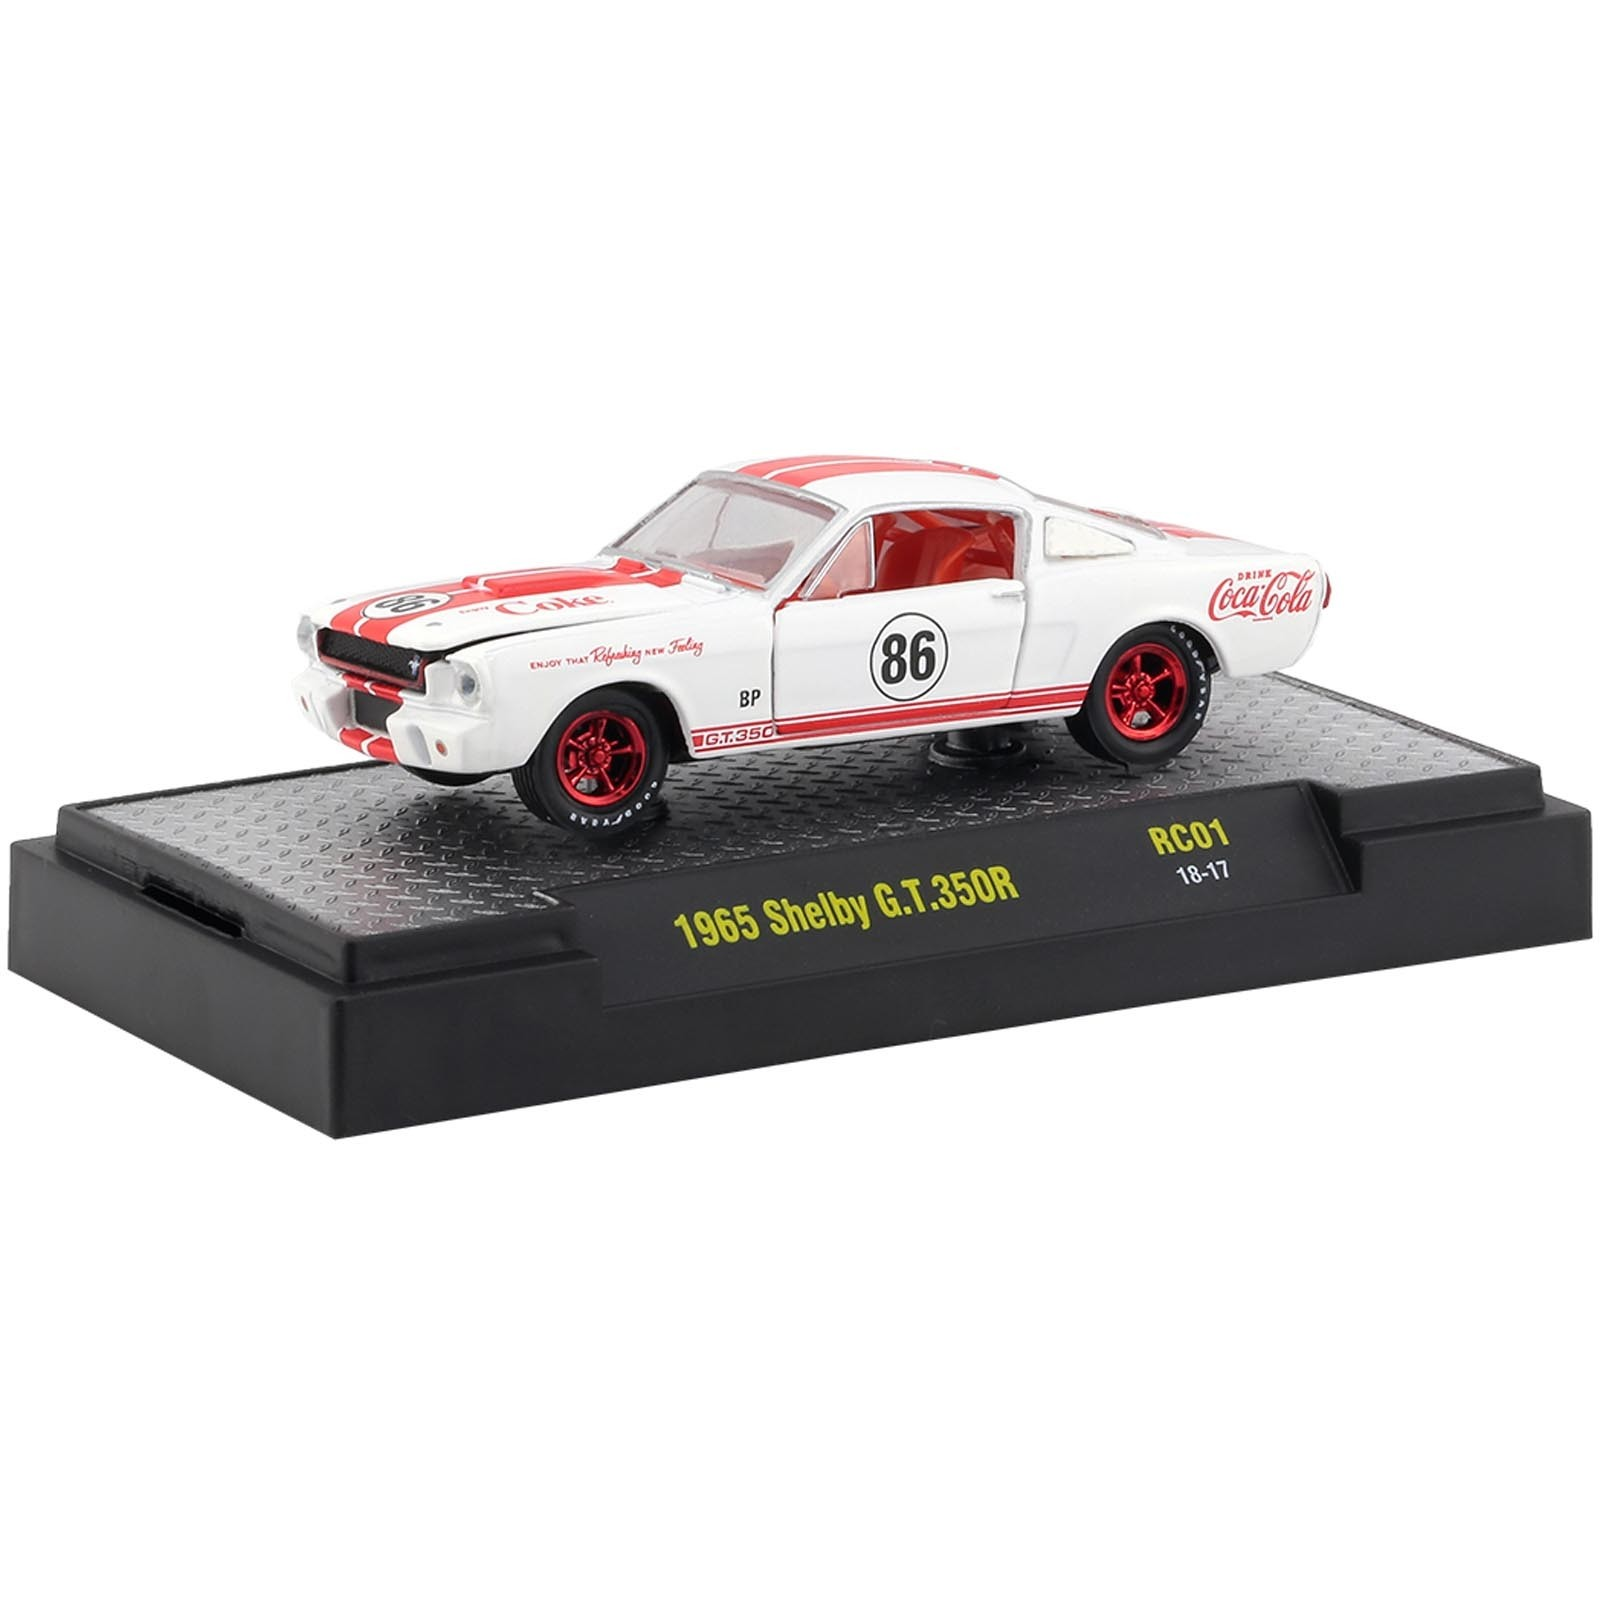 Miniatura - 1:64 - ​​​​​​​​​​​​​​​​​​​​​​​​​​​​​​​​​1965 Shelby GT350R Chase - Coca-Cola RC01 - M2 Machines